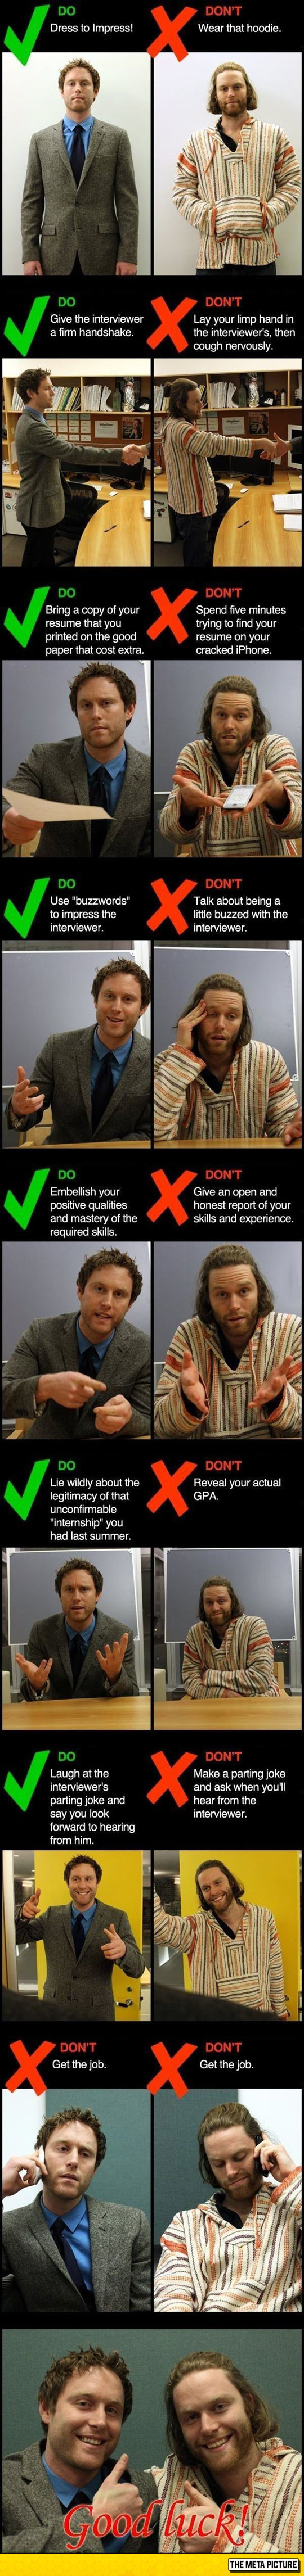 funny-job-interview-tips-dos-donts